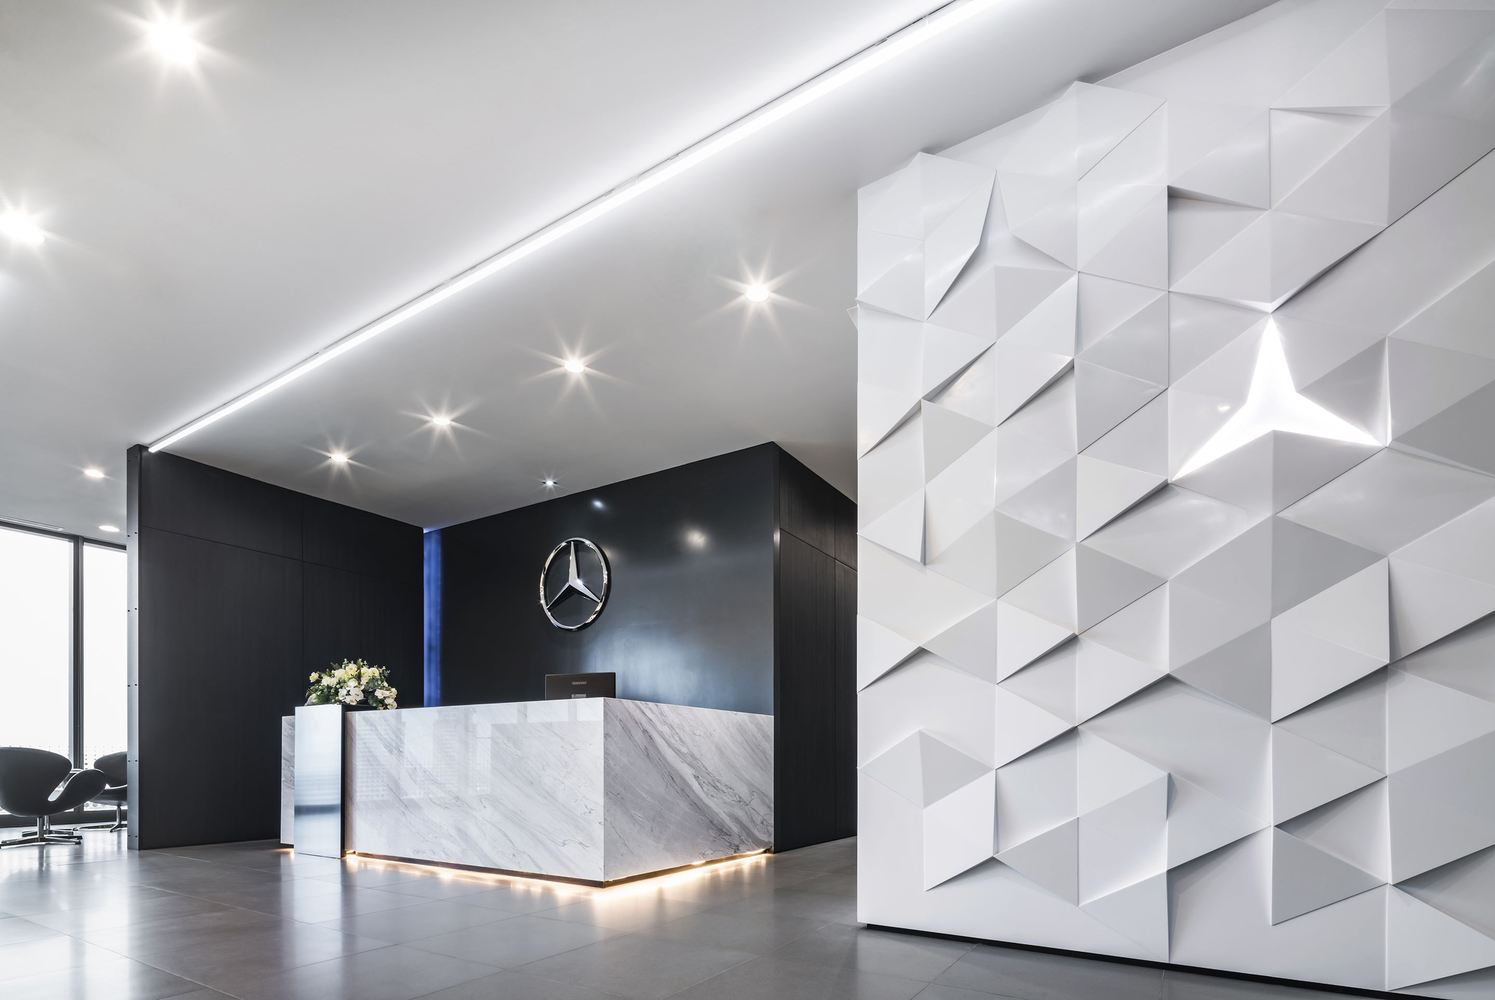 How to reveal the uniqueness of the brand in the interior